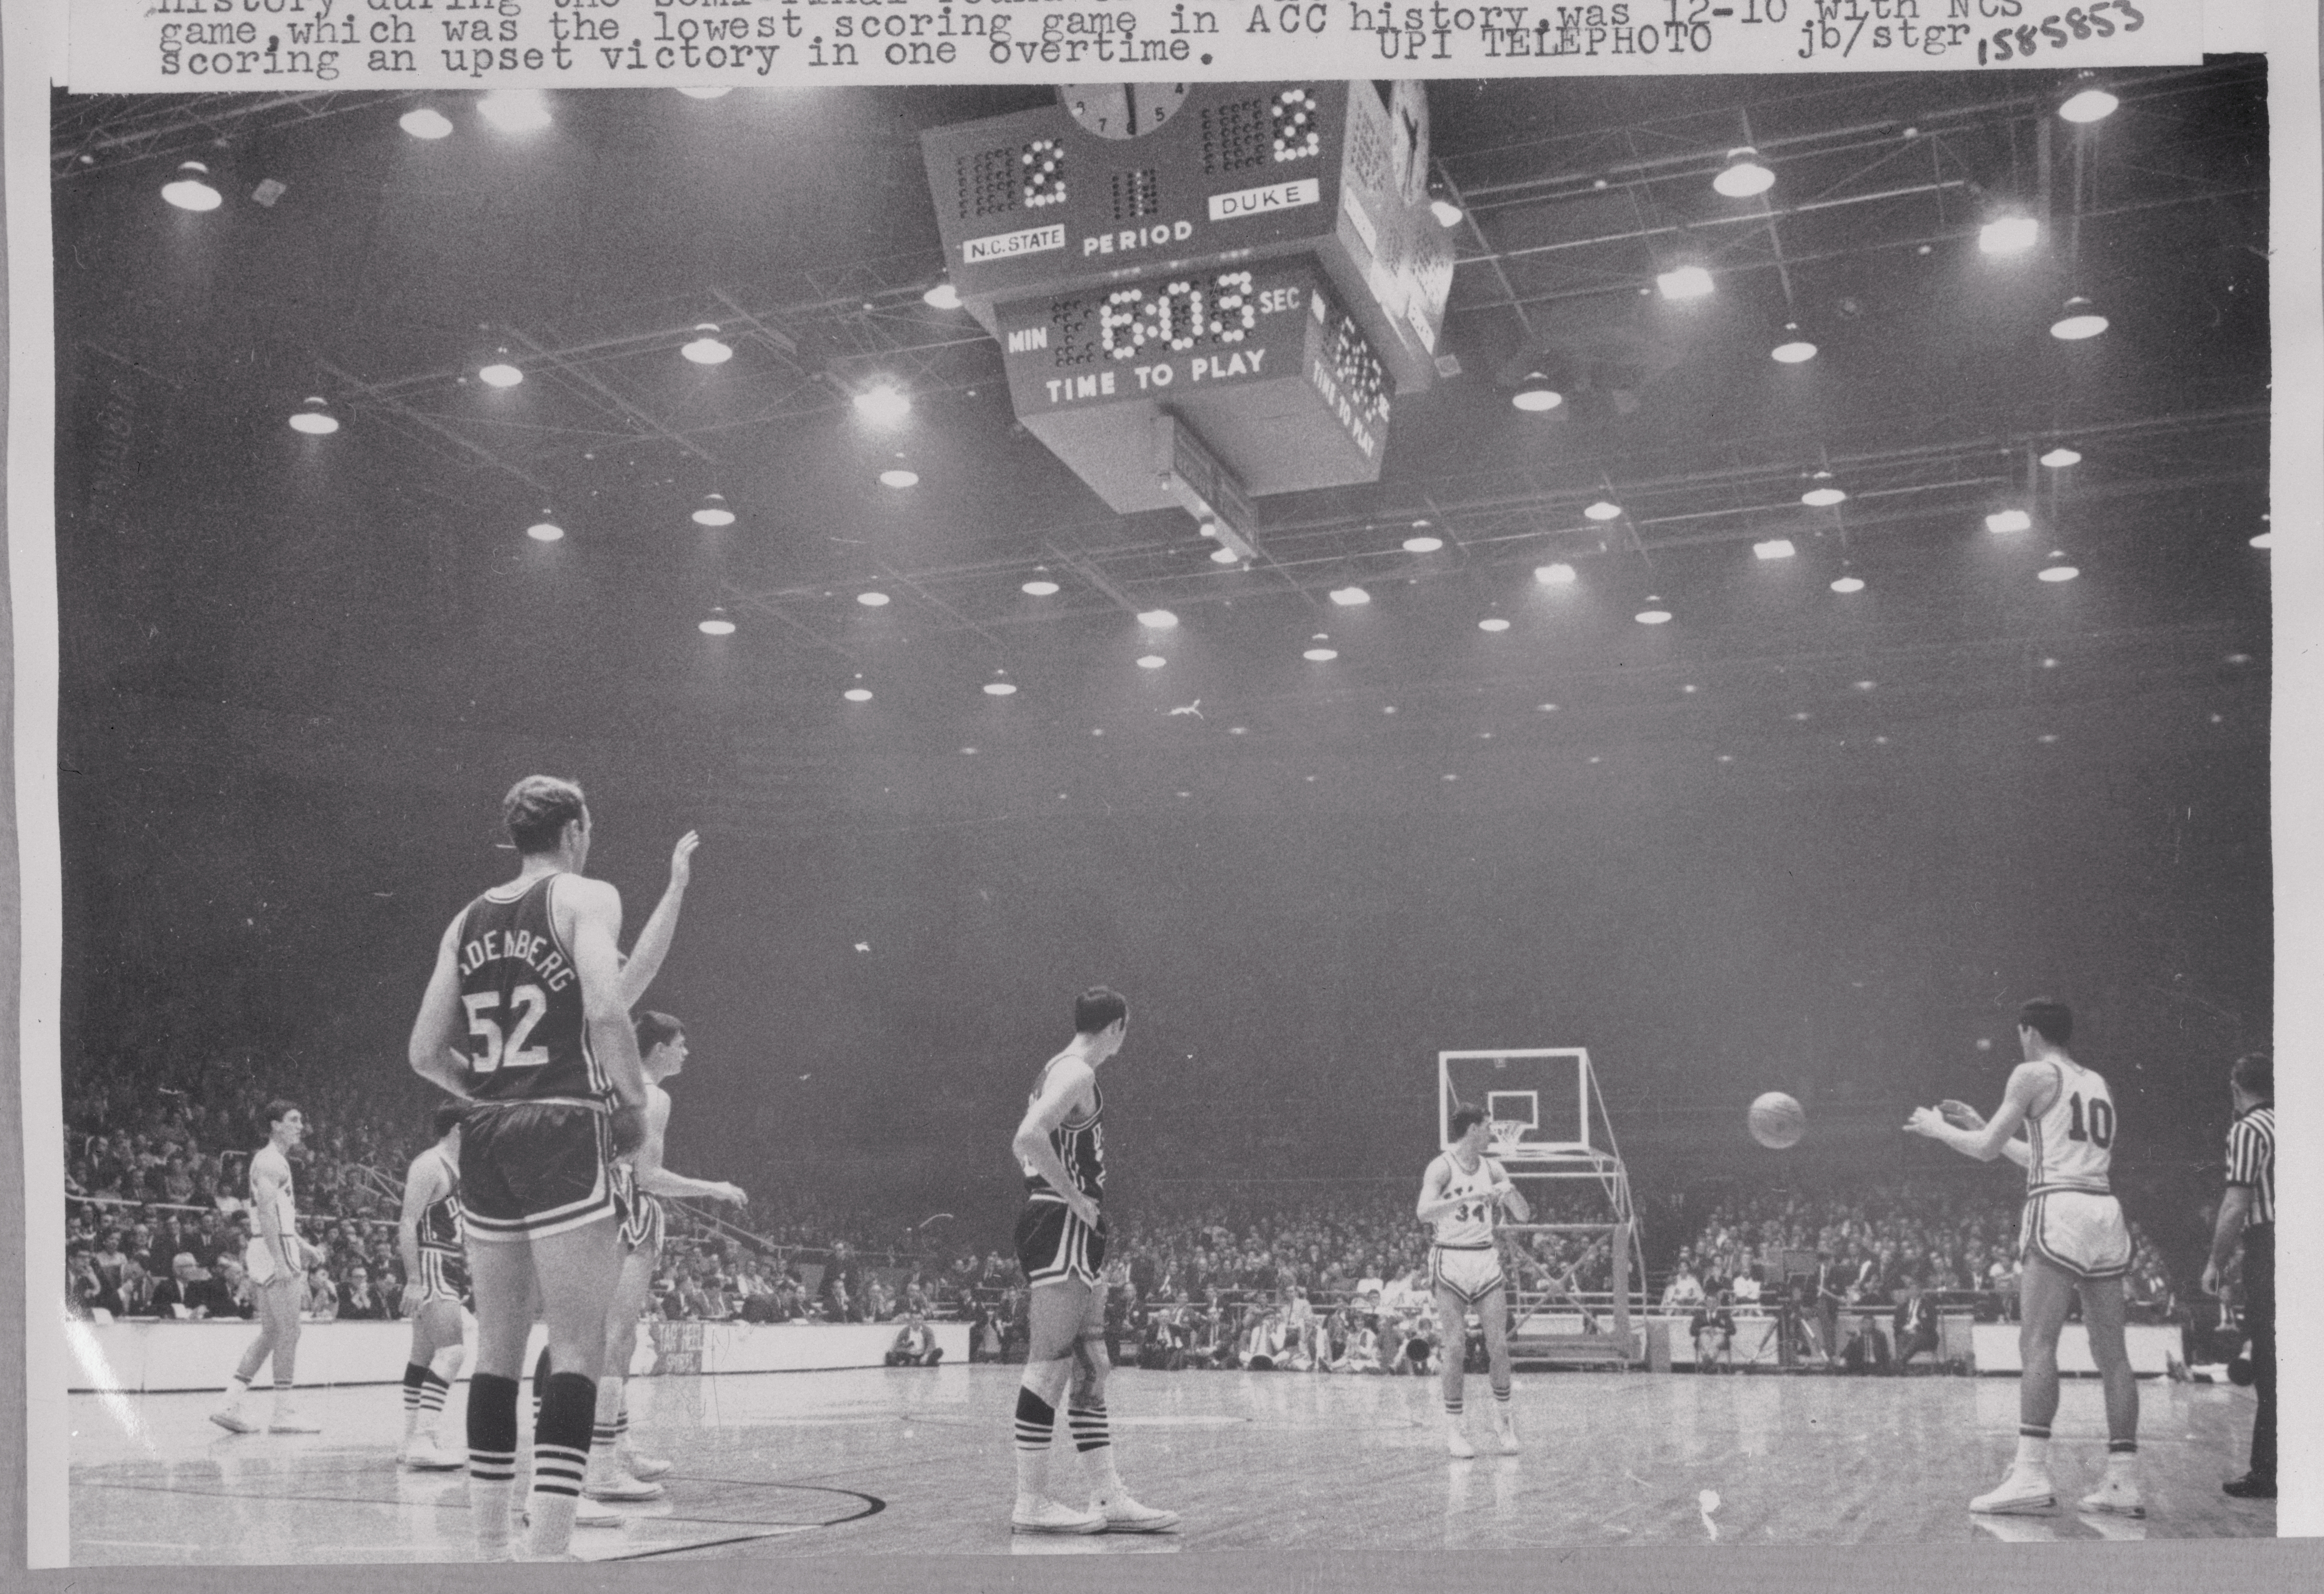 Basketball Players Competing in Game